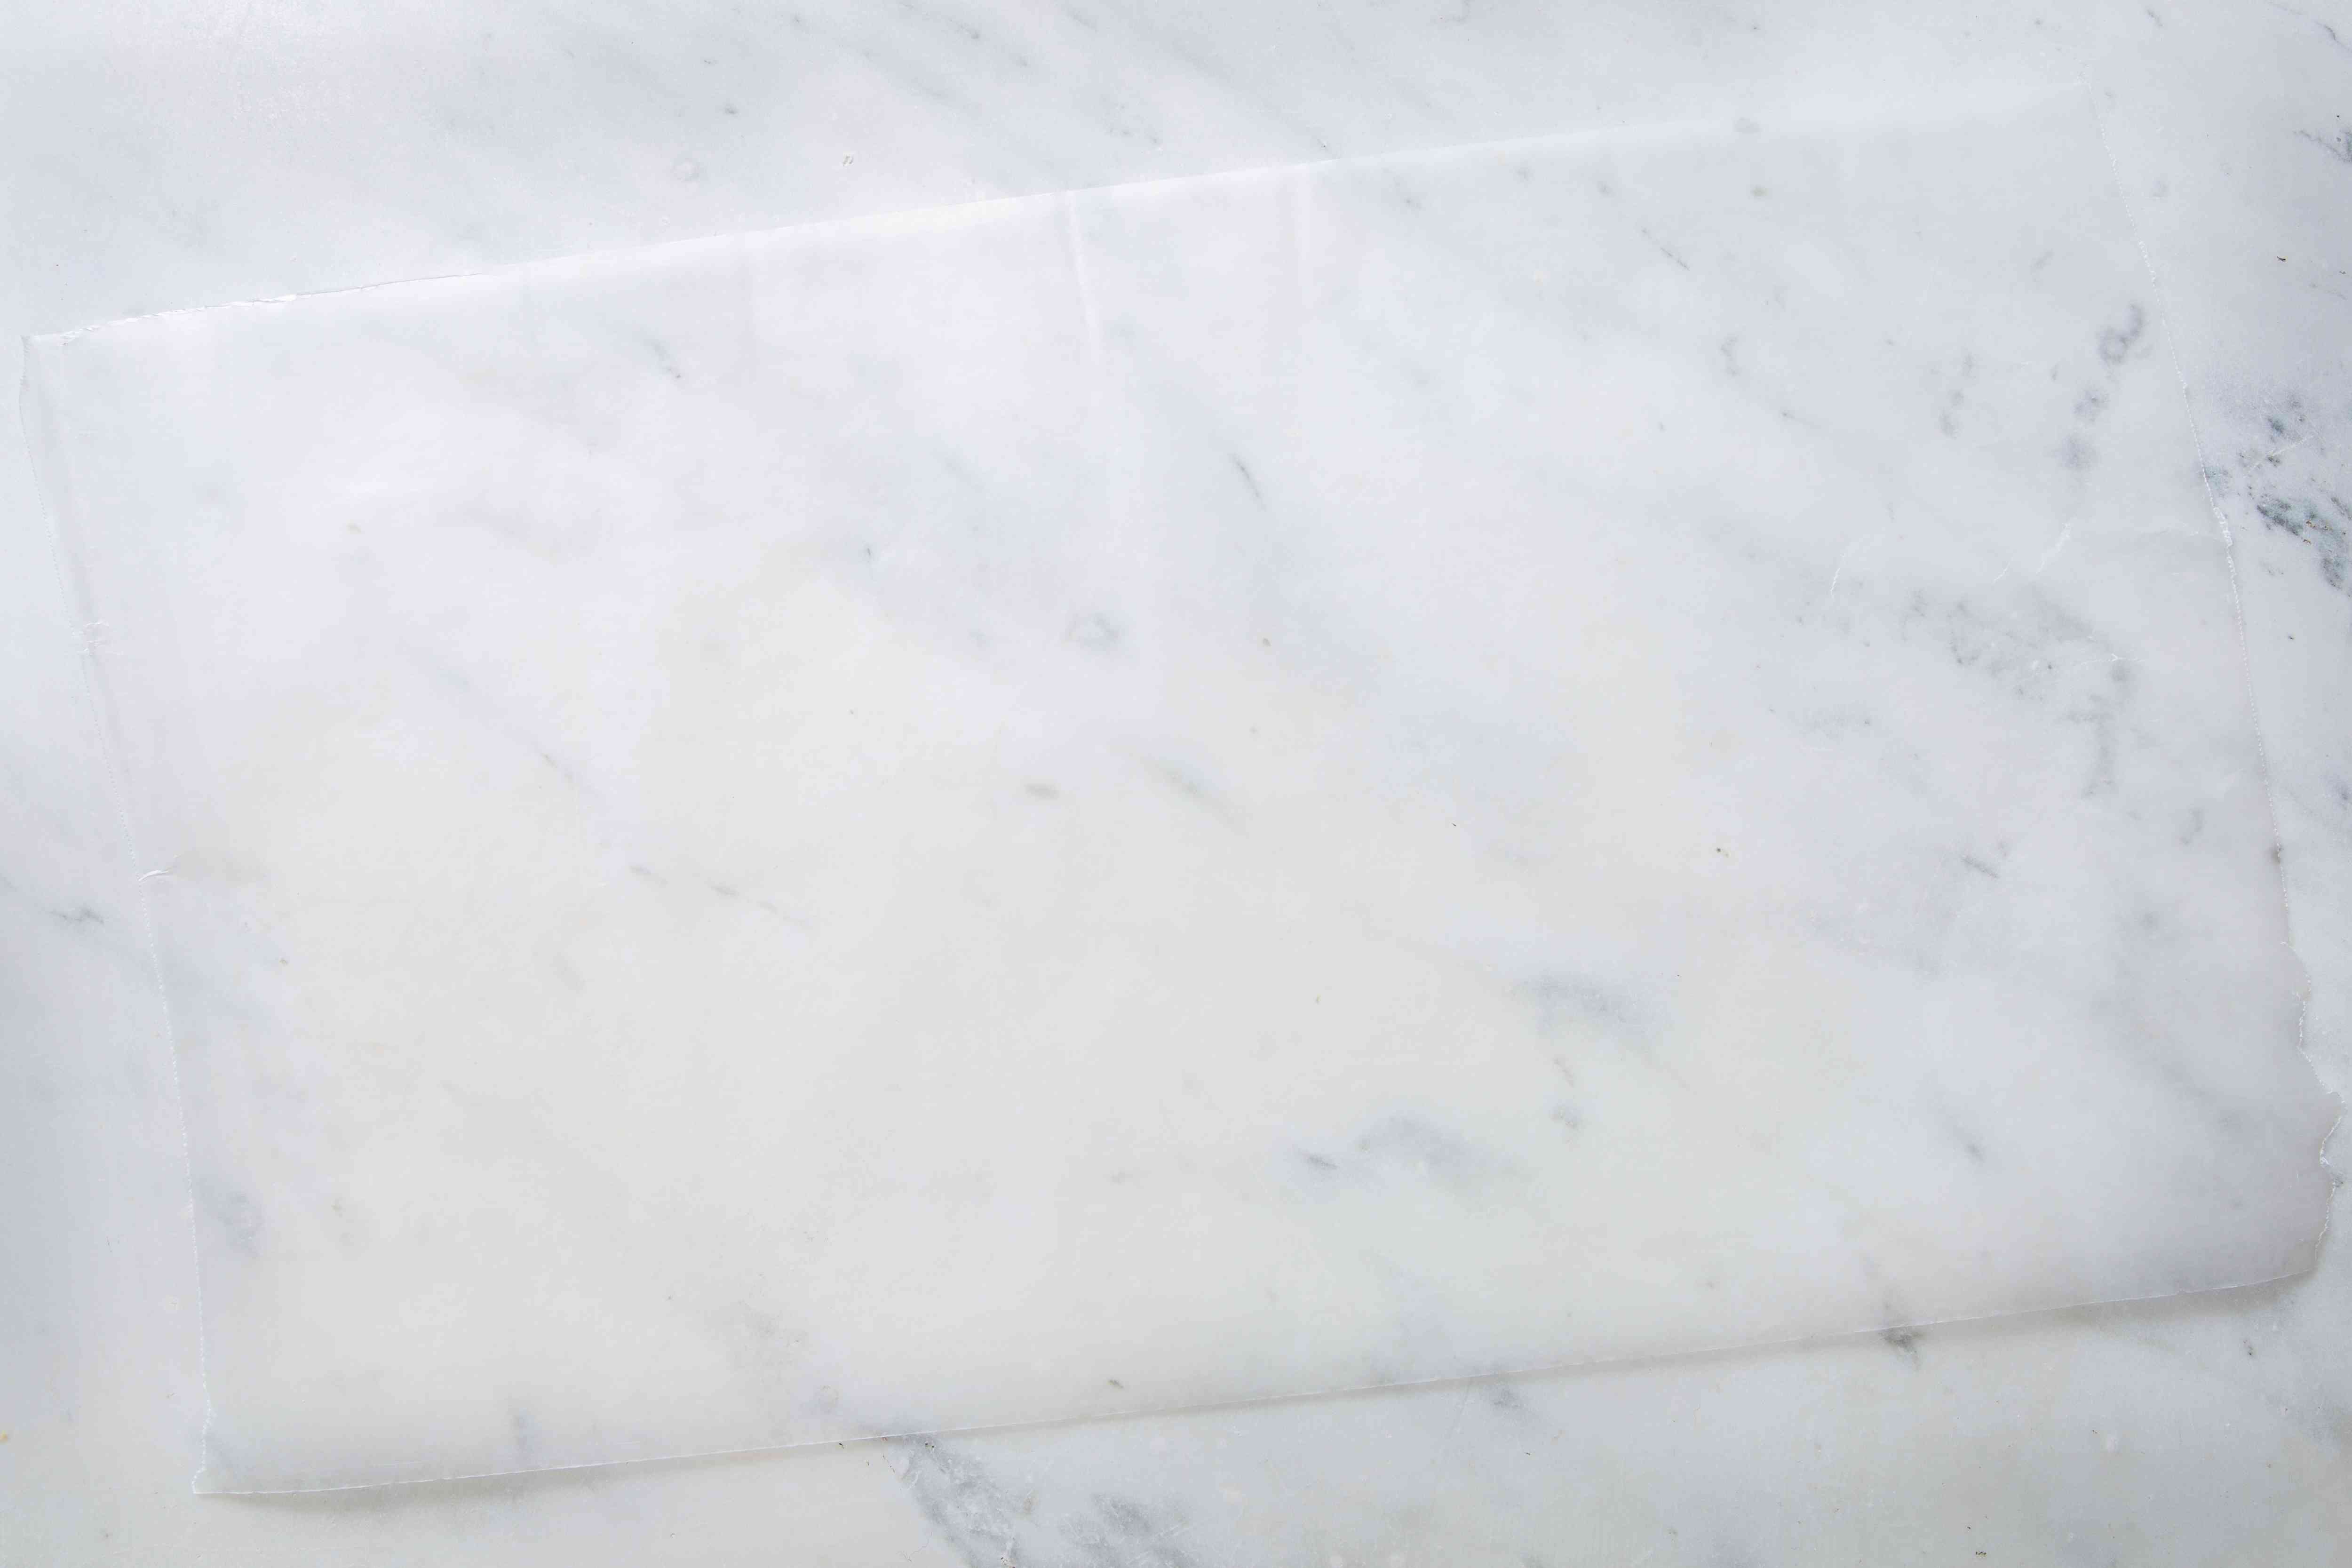 Waxed paper on a marble countertop